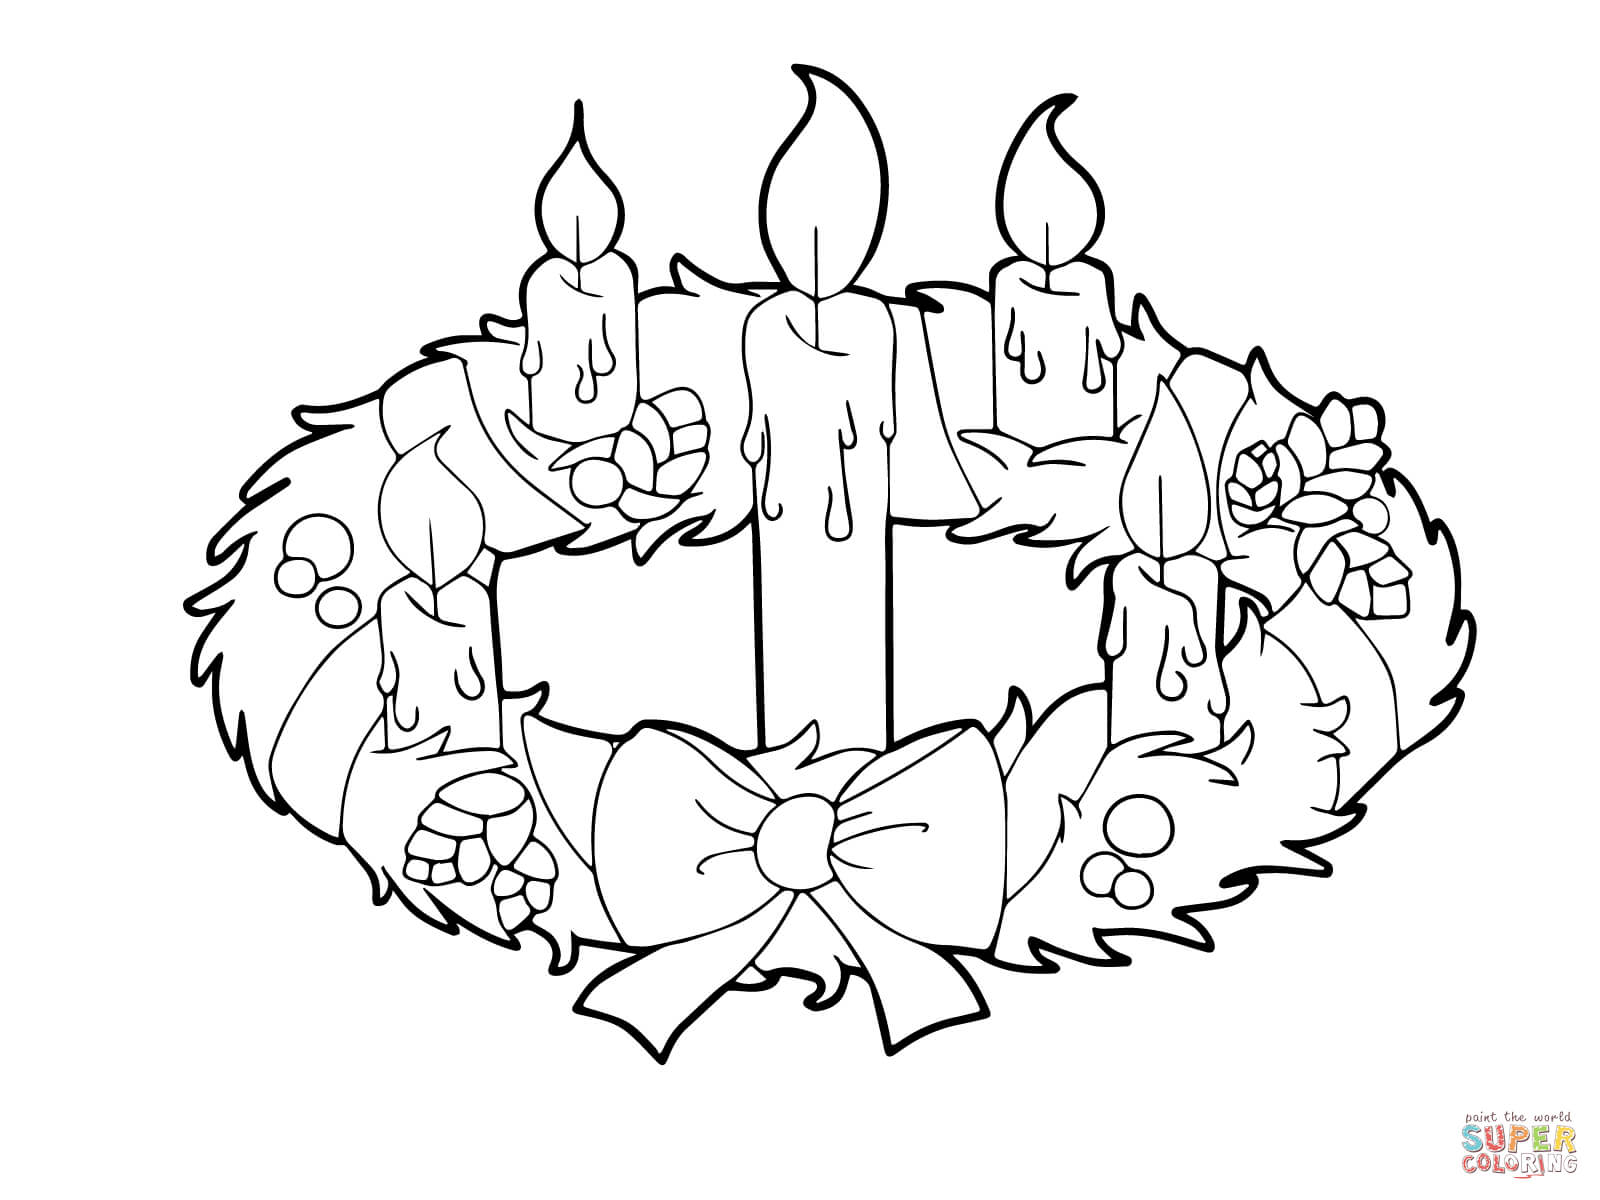 B w clipart advent wreath clipart transparent library Free Advent Wreath Cliparts, Download Free Clip Art, Free Clip Art ... clipart transparent library